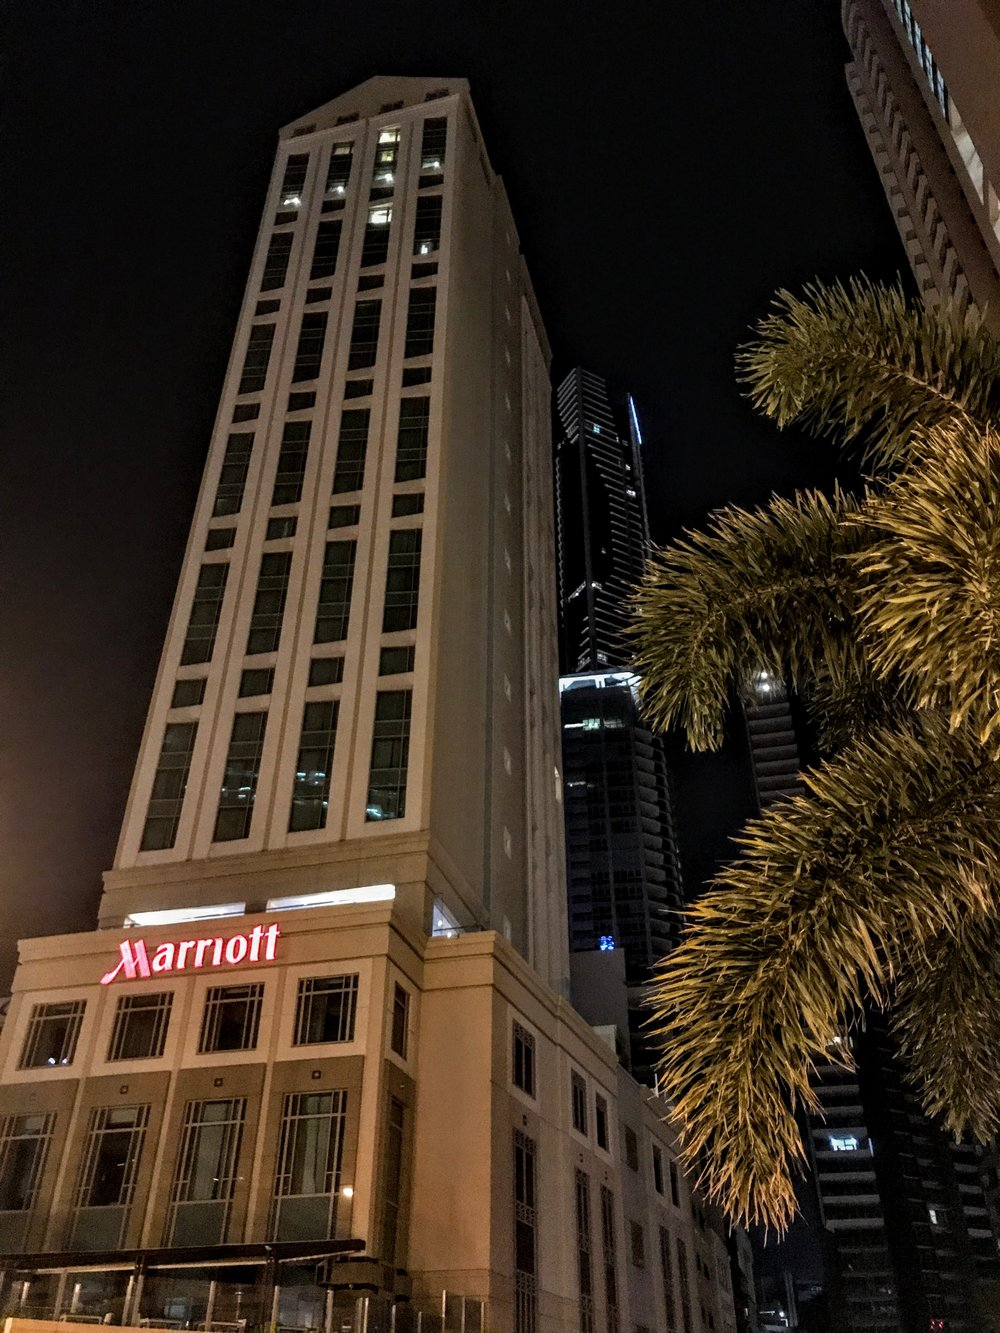 The Brisbane Marriott Hotel in the Central Business District of Brisbane, Australia